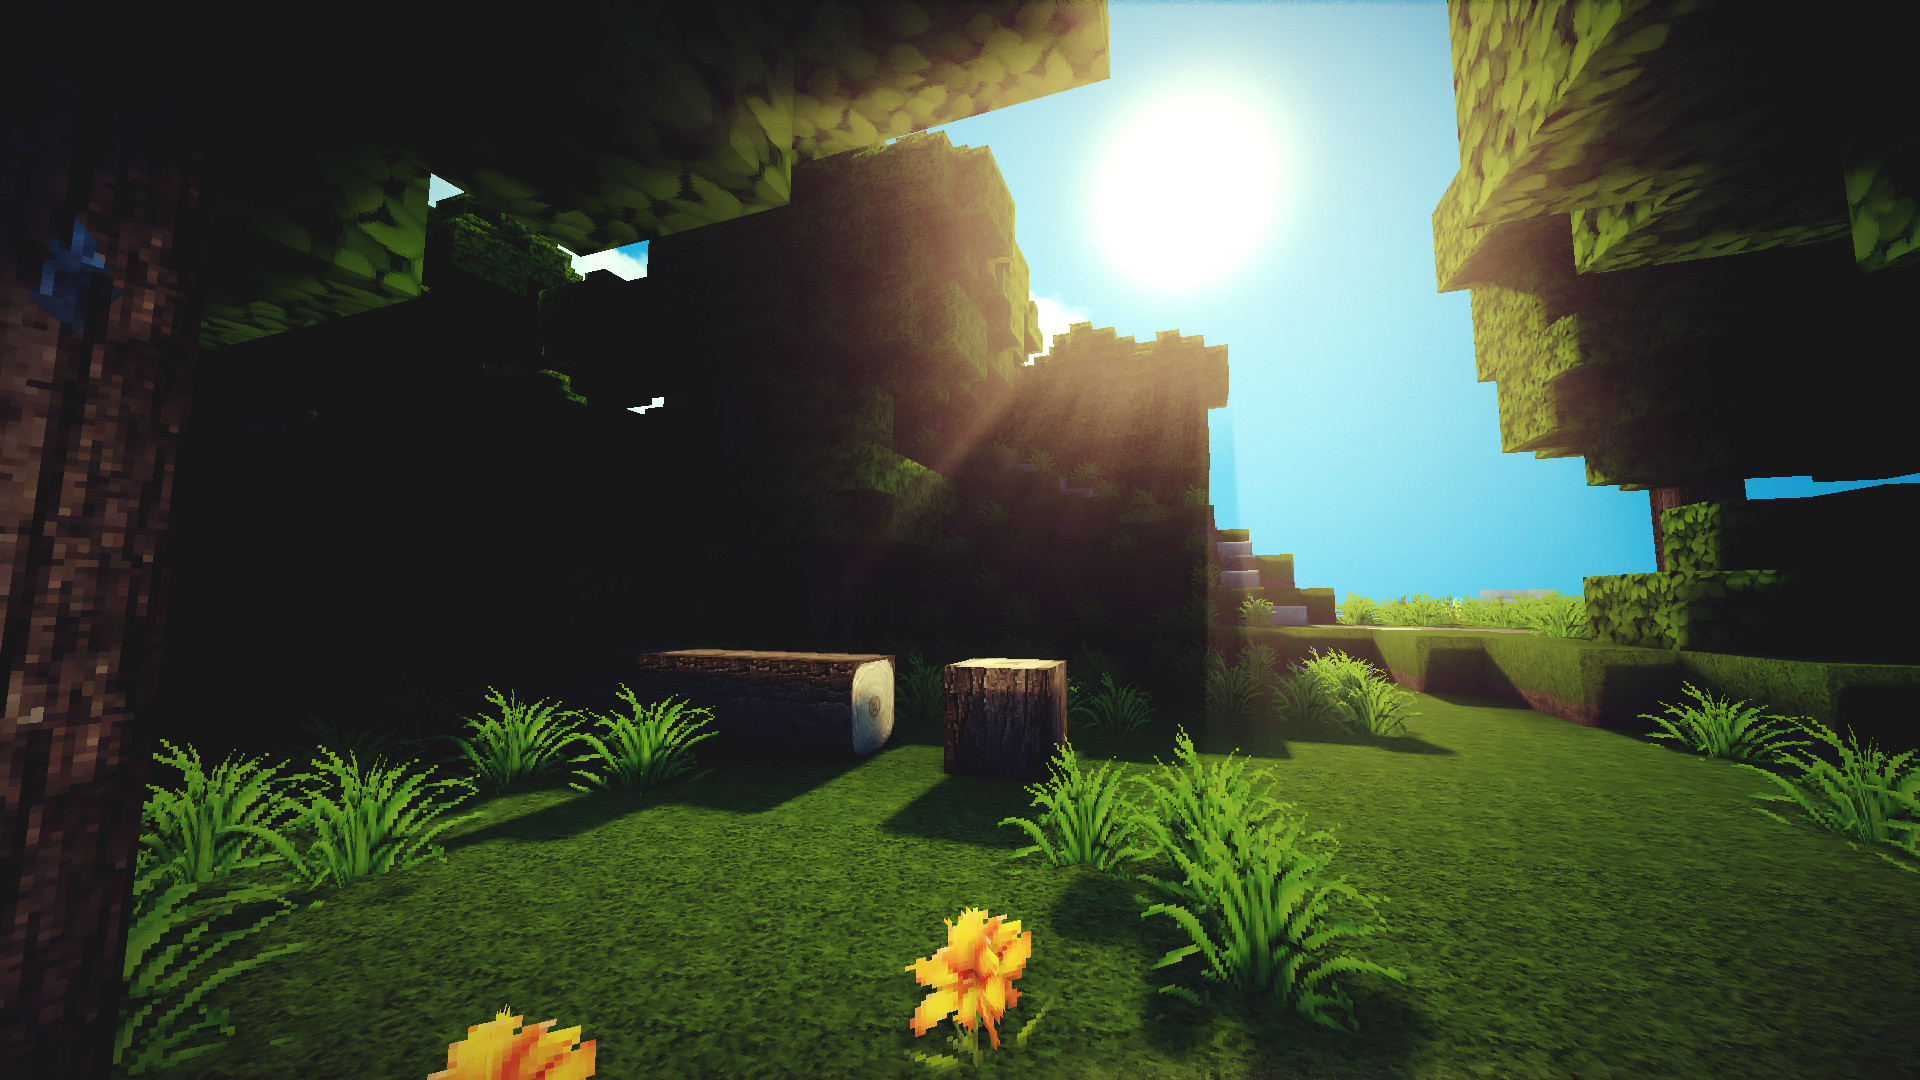 awesome minecraft wallpapers in HD dirt block | Minecraft HD Wallpapers |  Pinterest | Background hd wallpaper, Hd wallpaper and Minecraft wallpaper